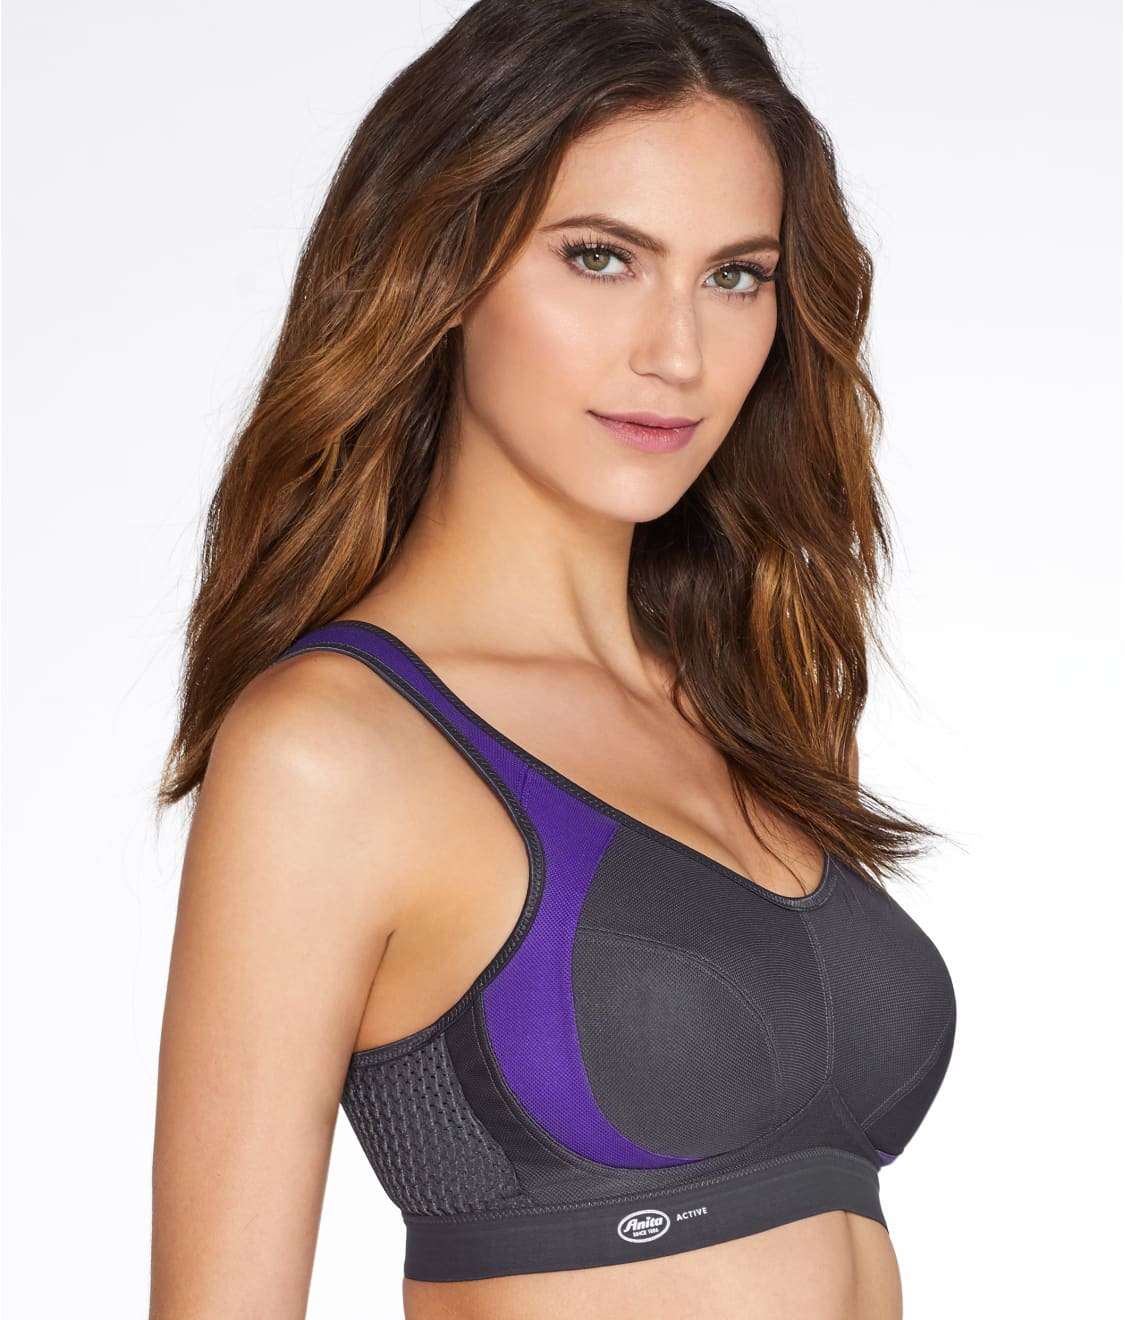 efb4732b15 See High Impact Wire-Free Sports Bra in Purple